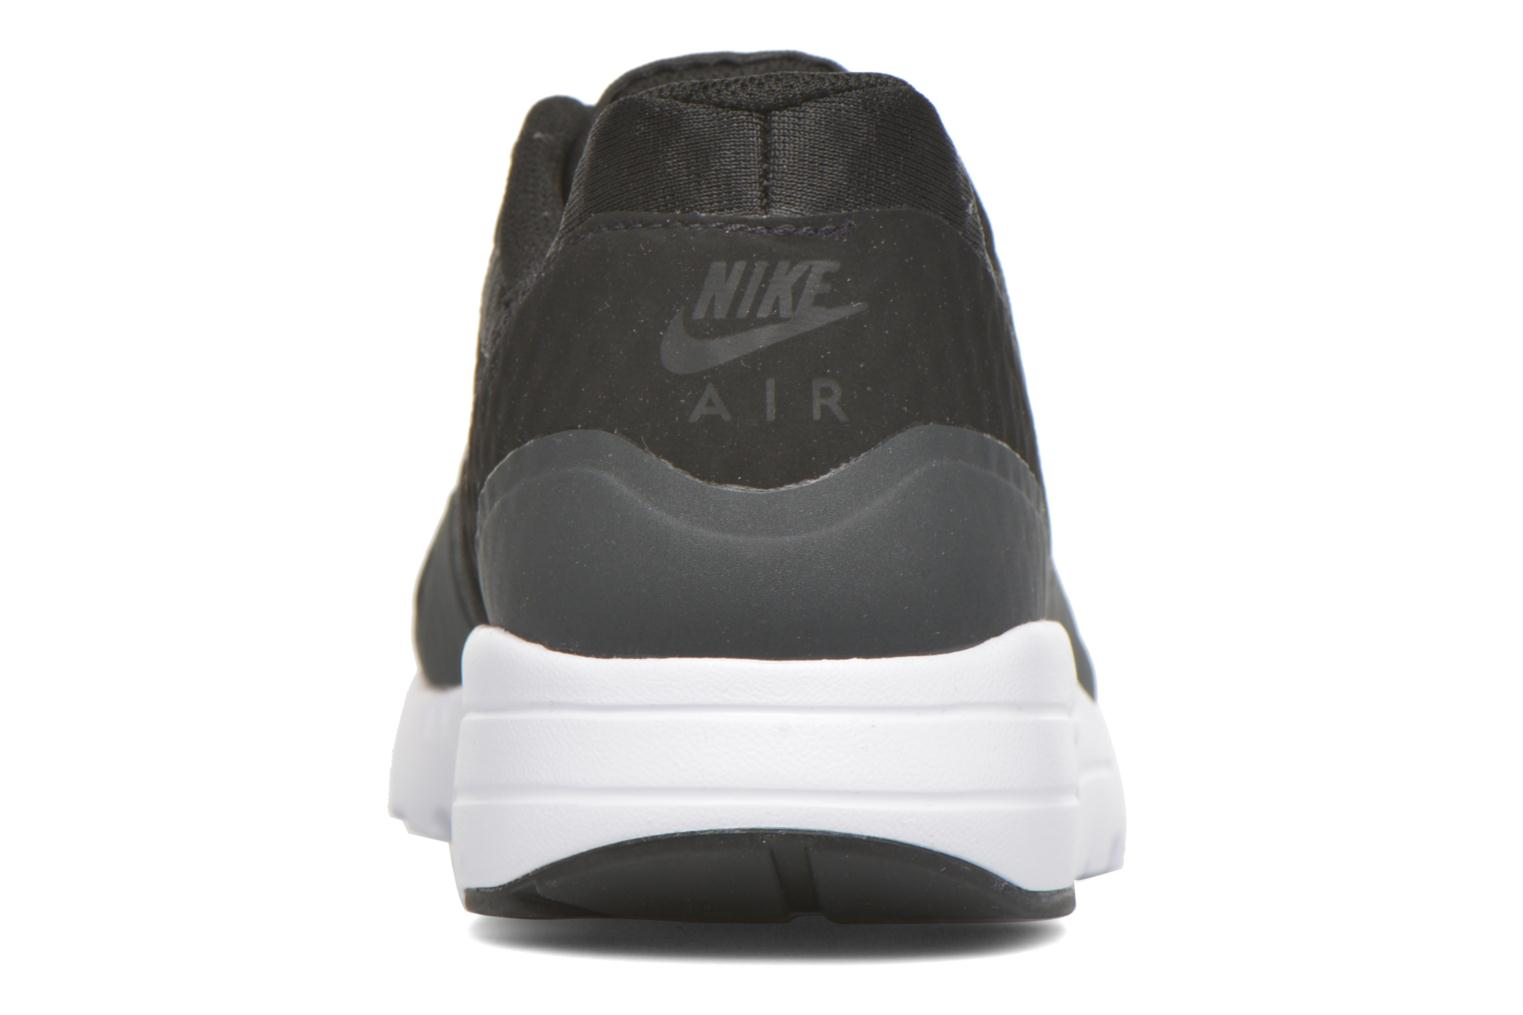 Nike Air Max 1 Ultra Essential Black/Anthracite-White